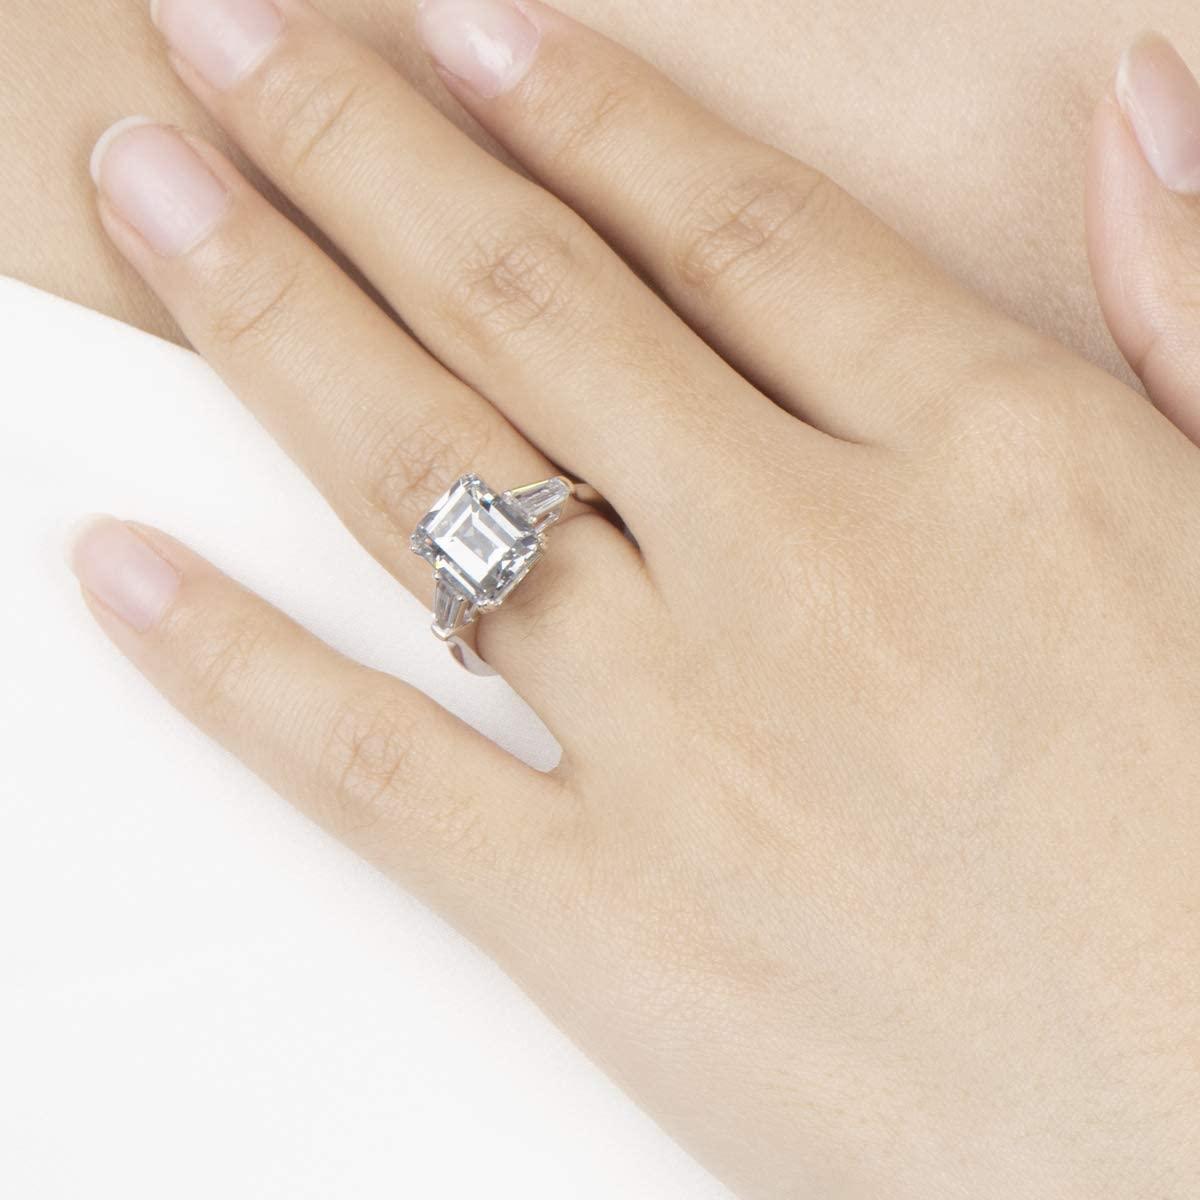 AINUOSHI 4 Carat// 3 Carat Emerald Cut Ring Baguette 3 Stones Cubic Zirconia CZ Engagement Sterling Silver Band Jewelry